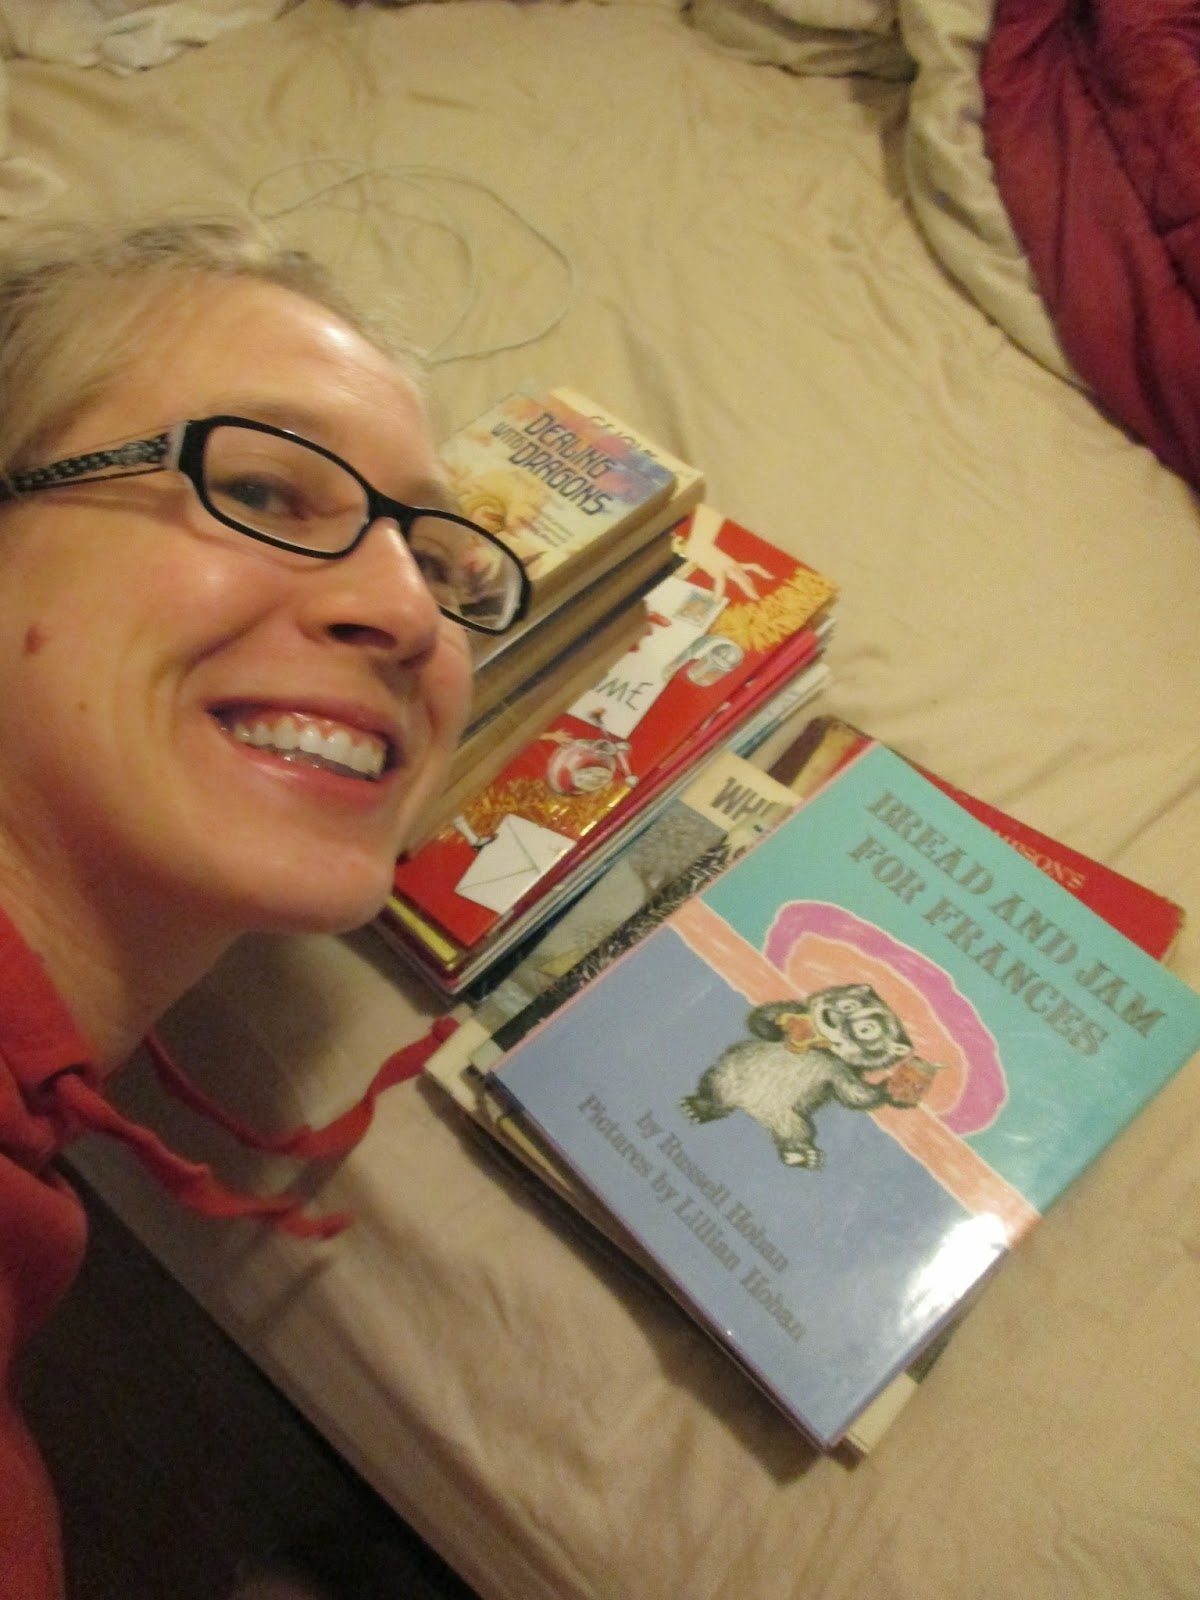 me and my favorite books